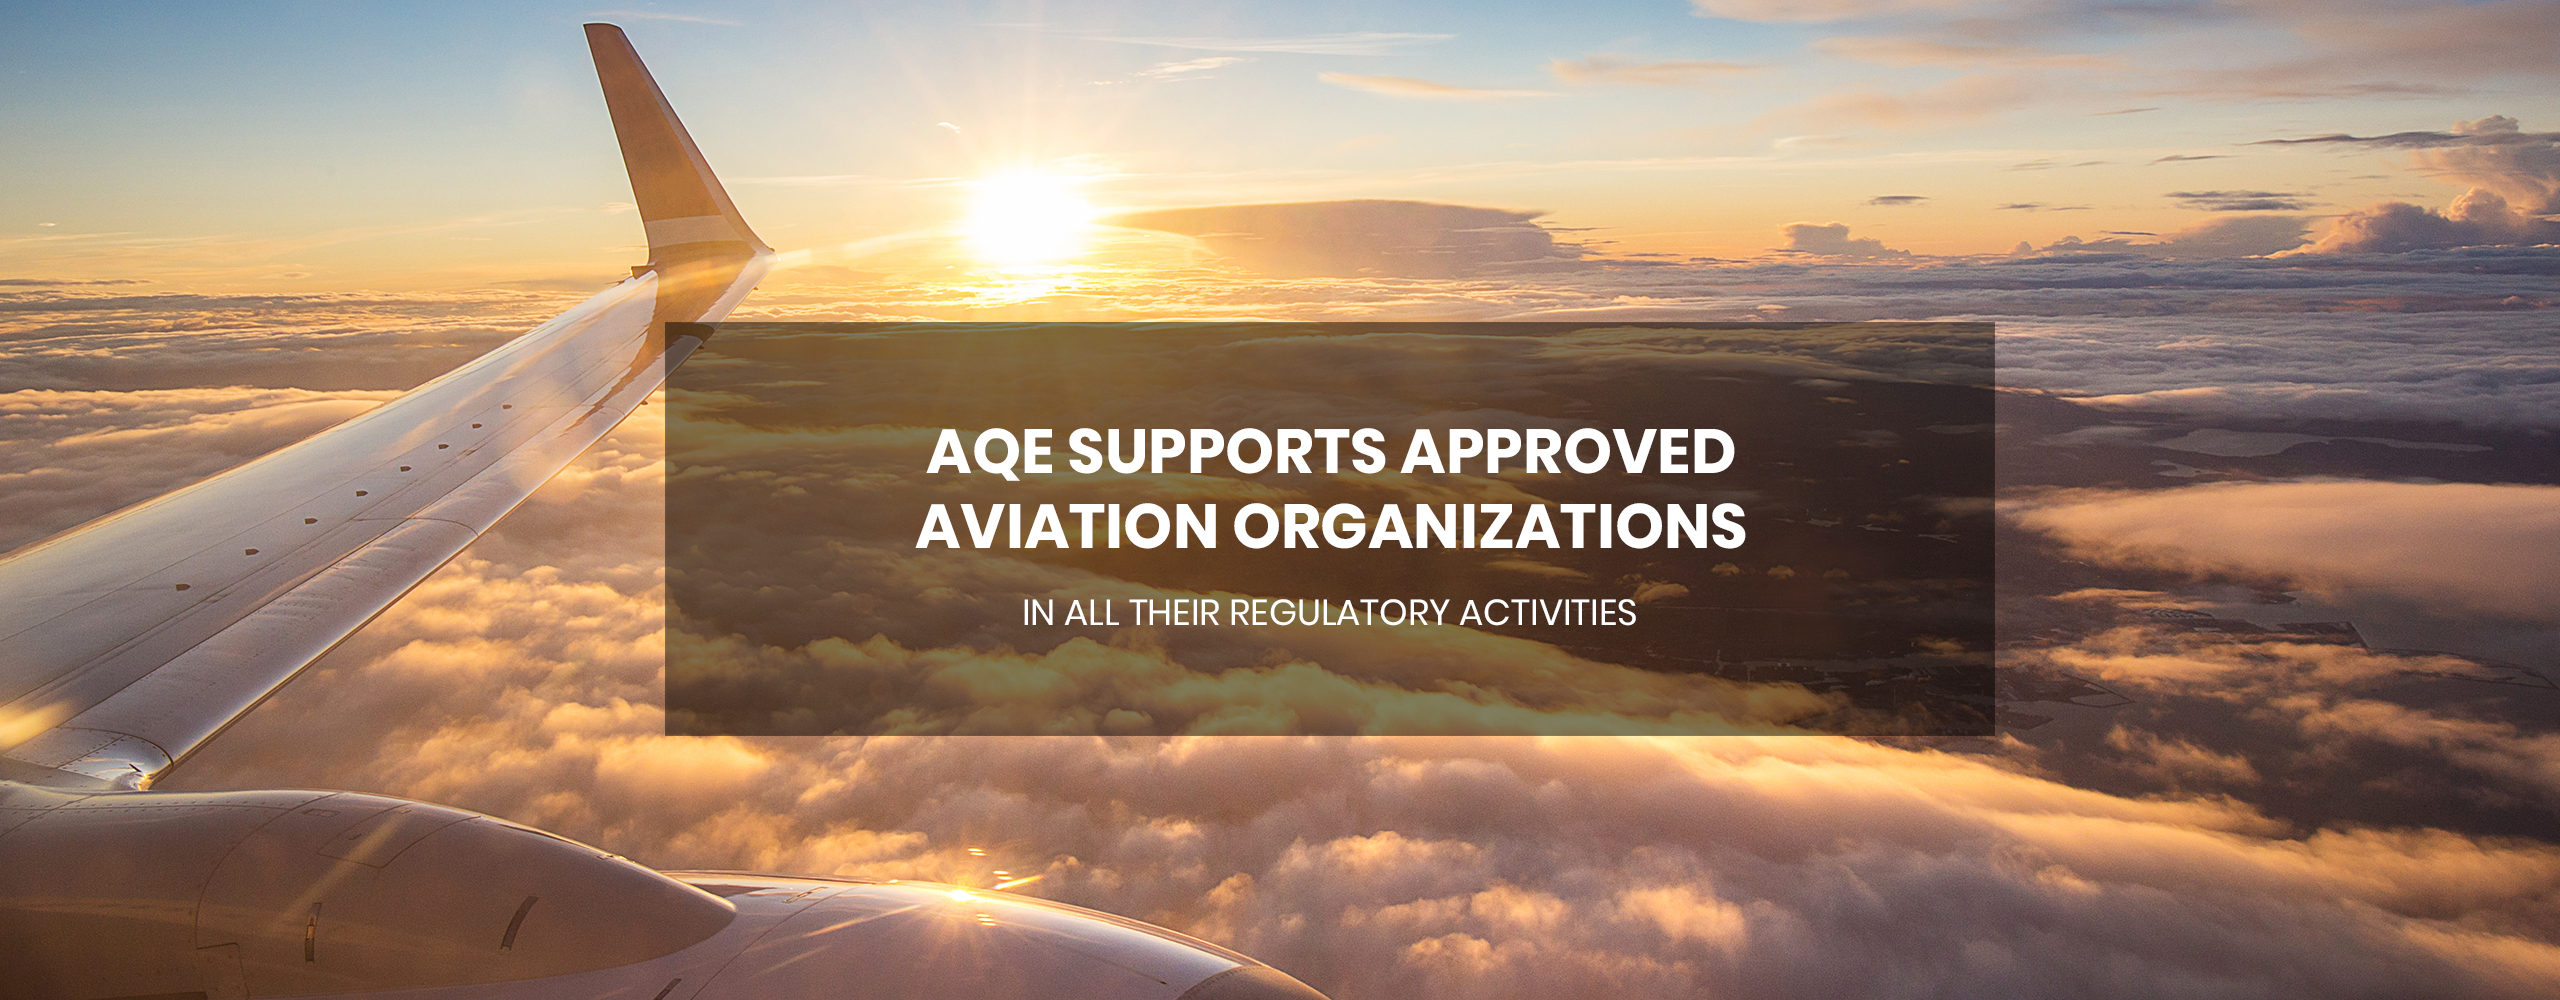 AQE supports approved aviation organizations in all their regulatory activities